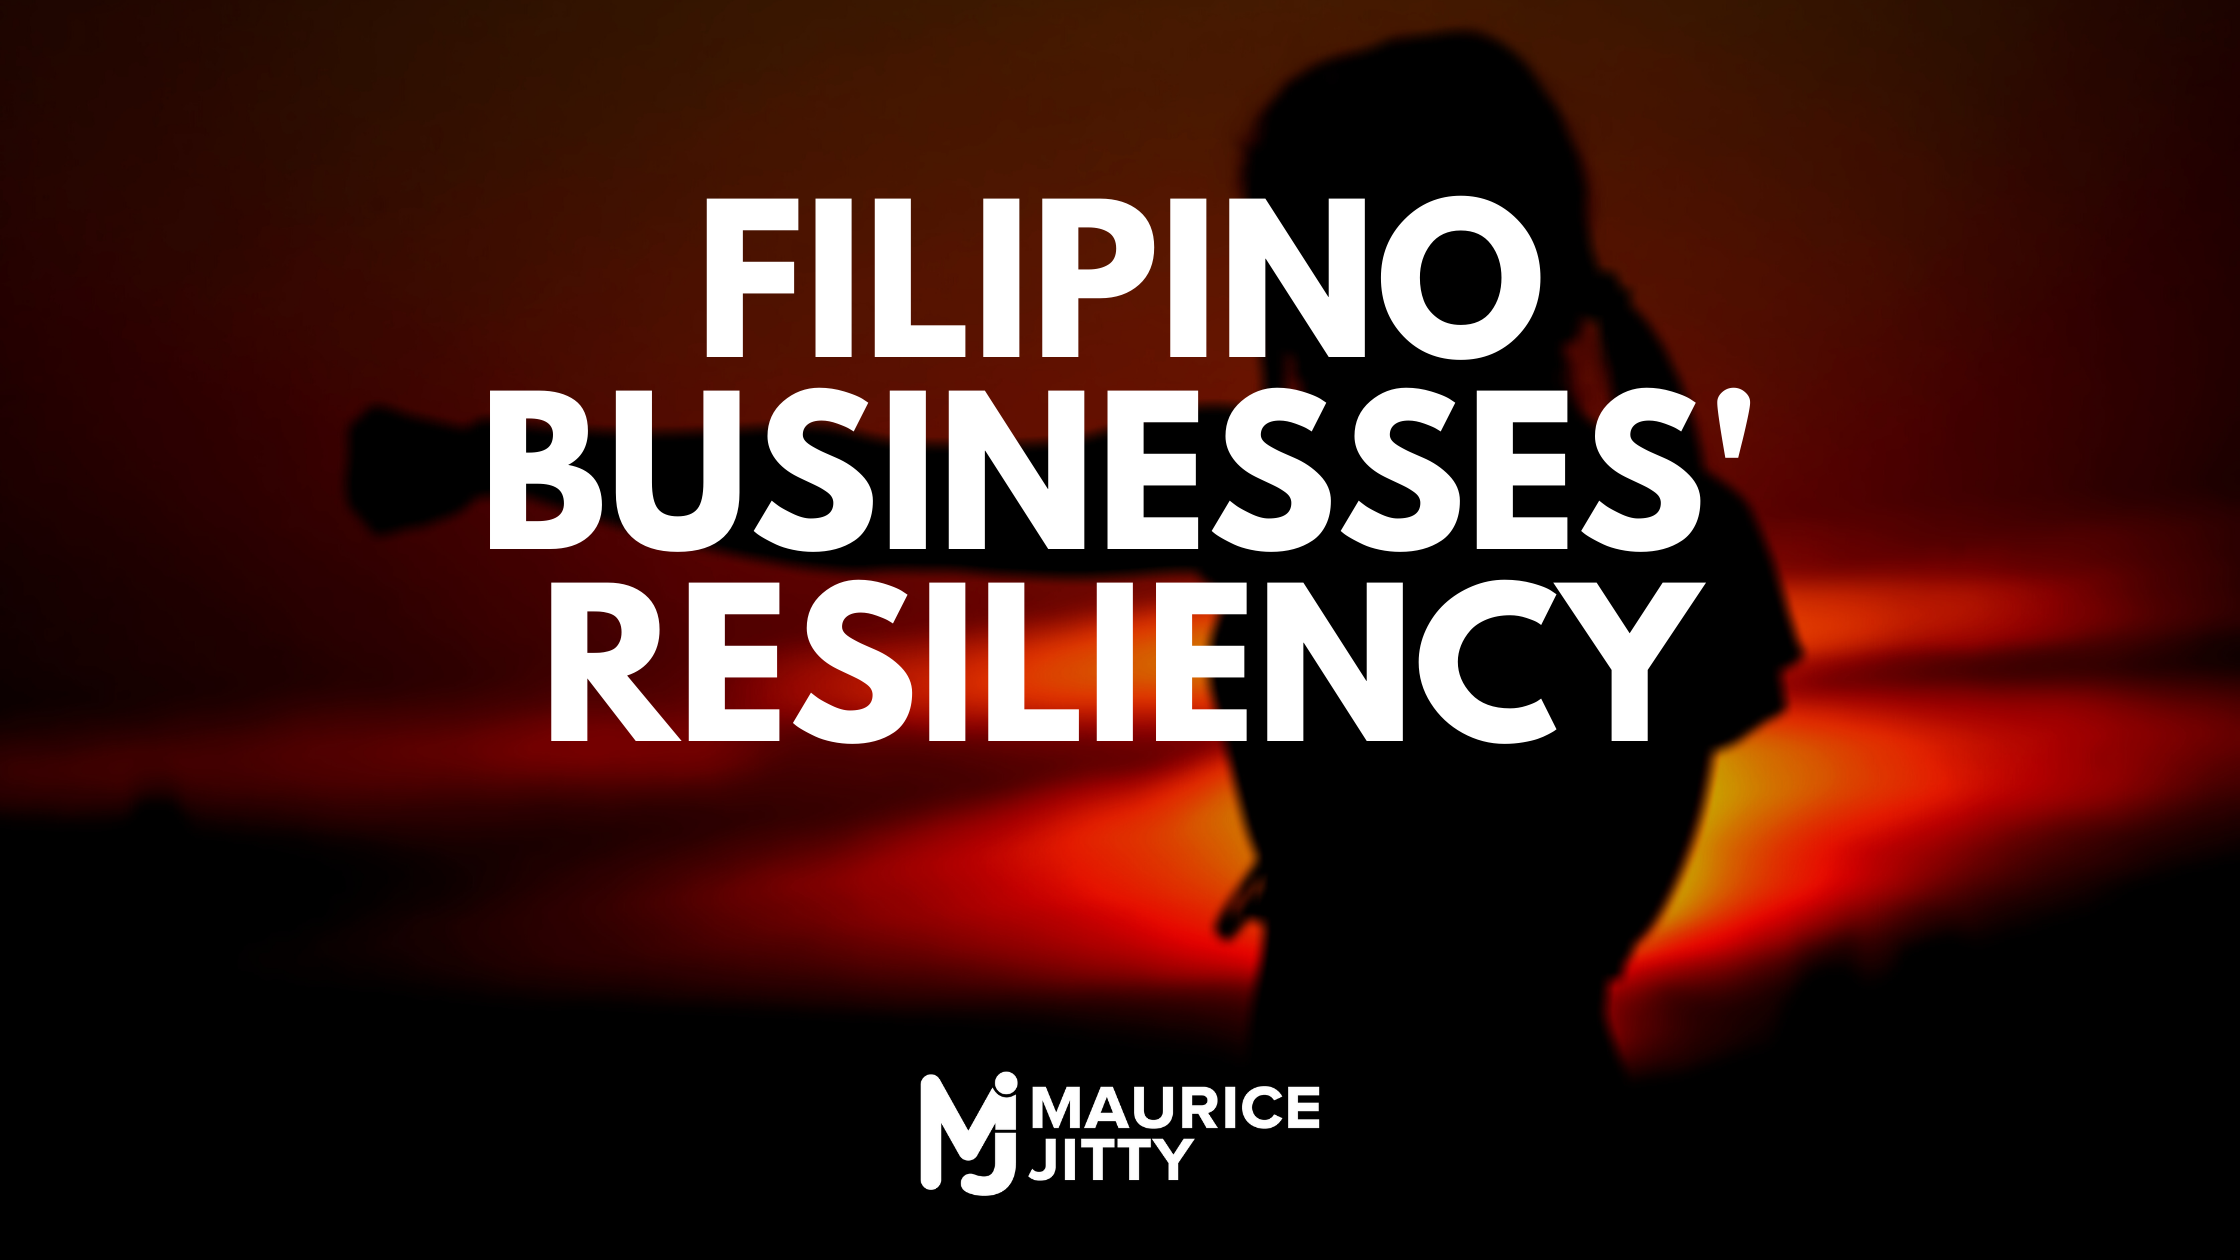 Filipino Businesses' Resiliency